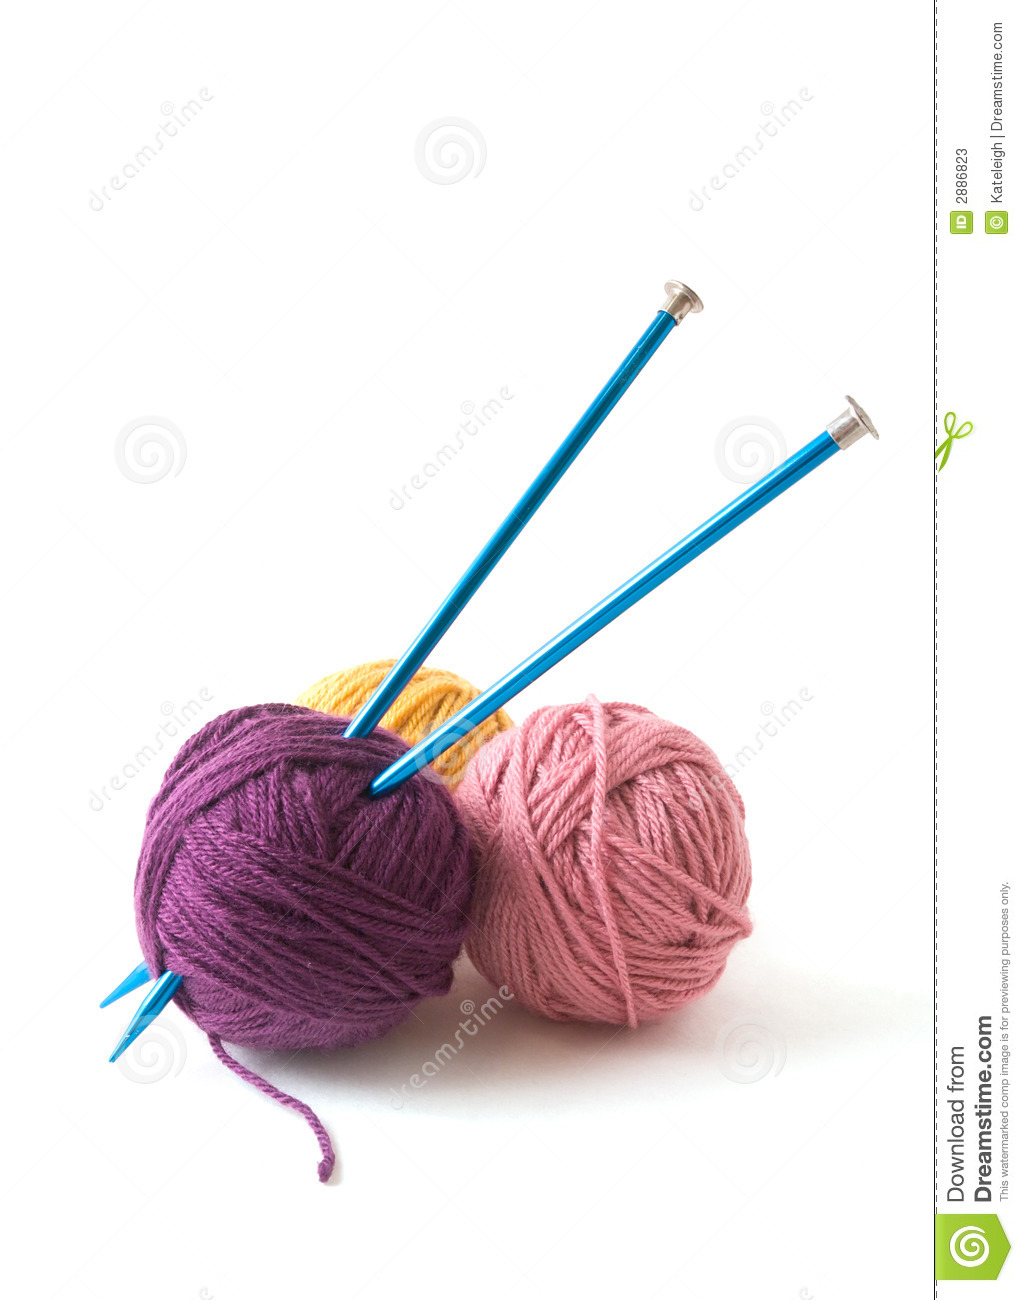 Knitting Wool And Needles : Knitting needles and yarn stock photos image